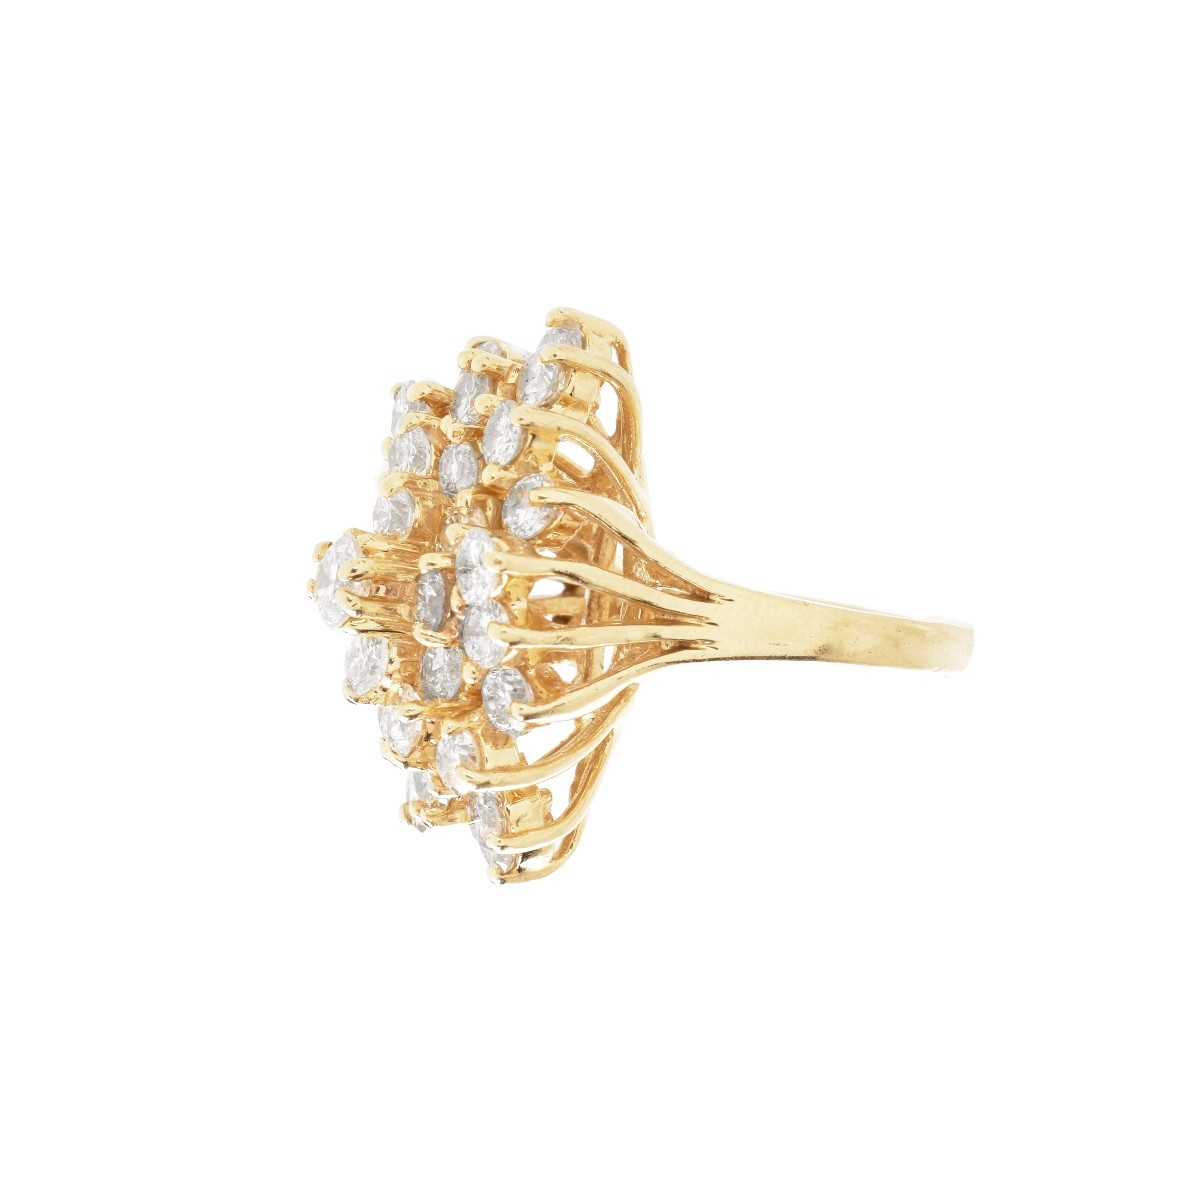 Vintage Diamond and 14K Ring